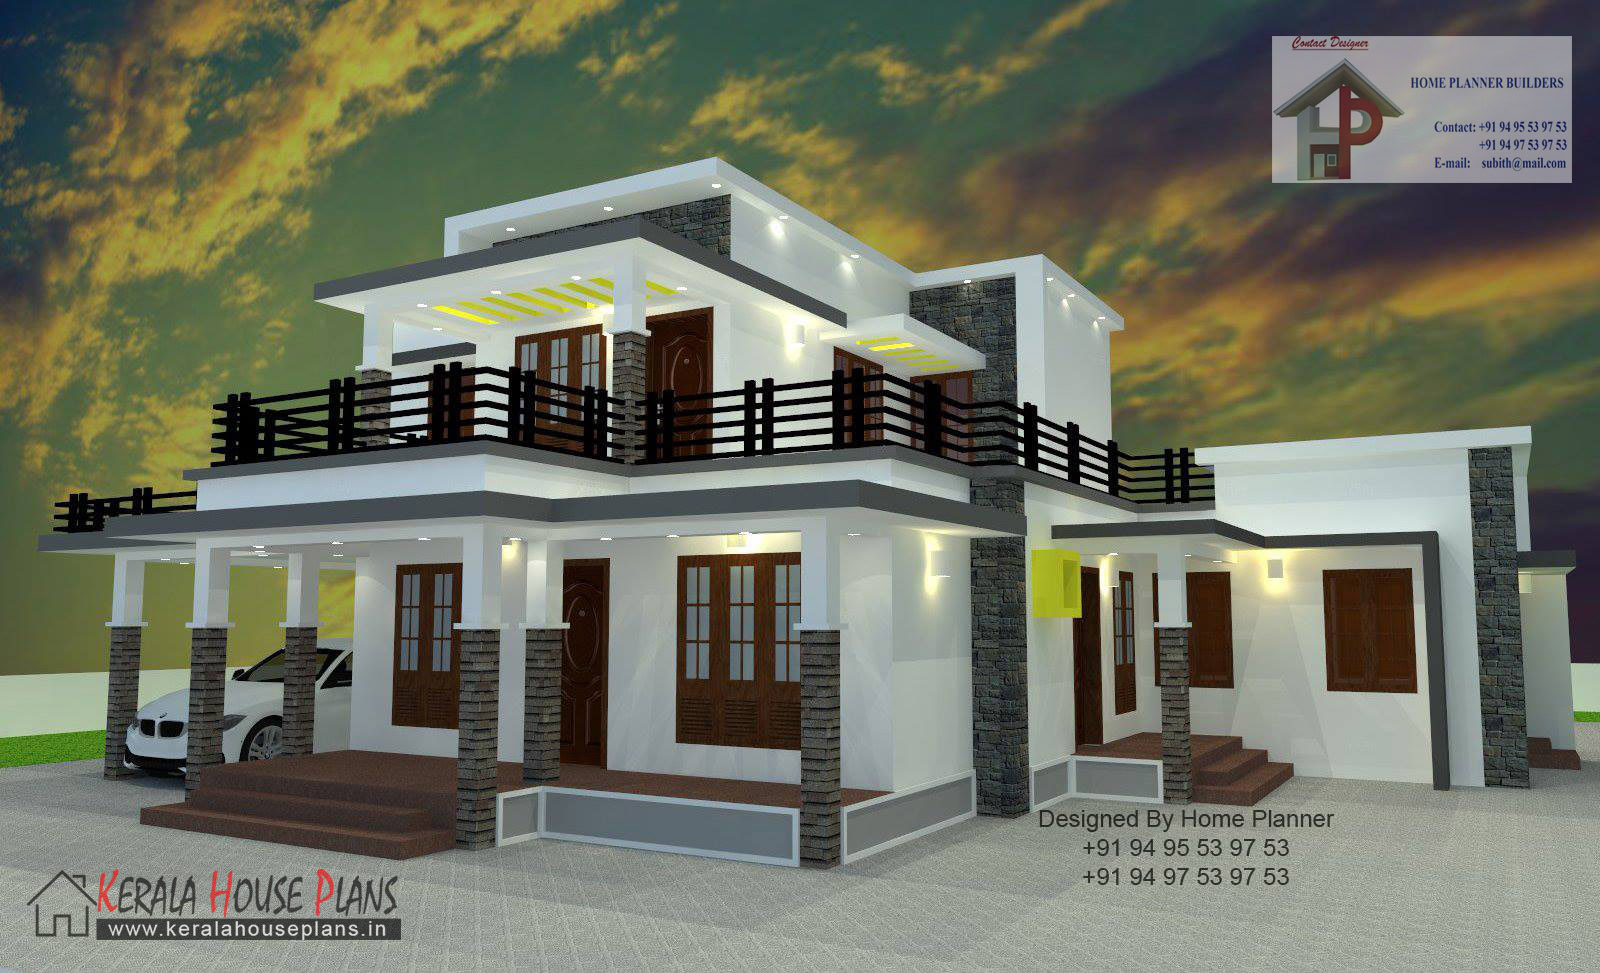 2000 sqft box type house kerala house plans designs for Modern box type house design